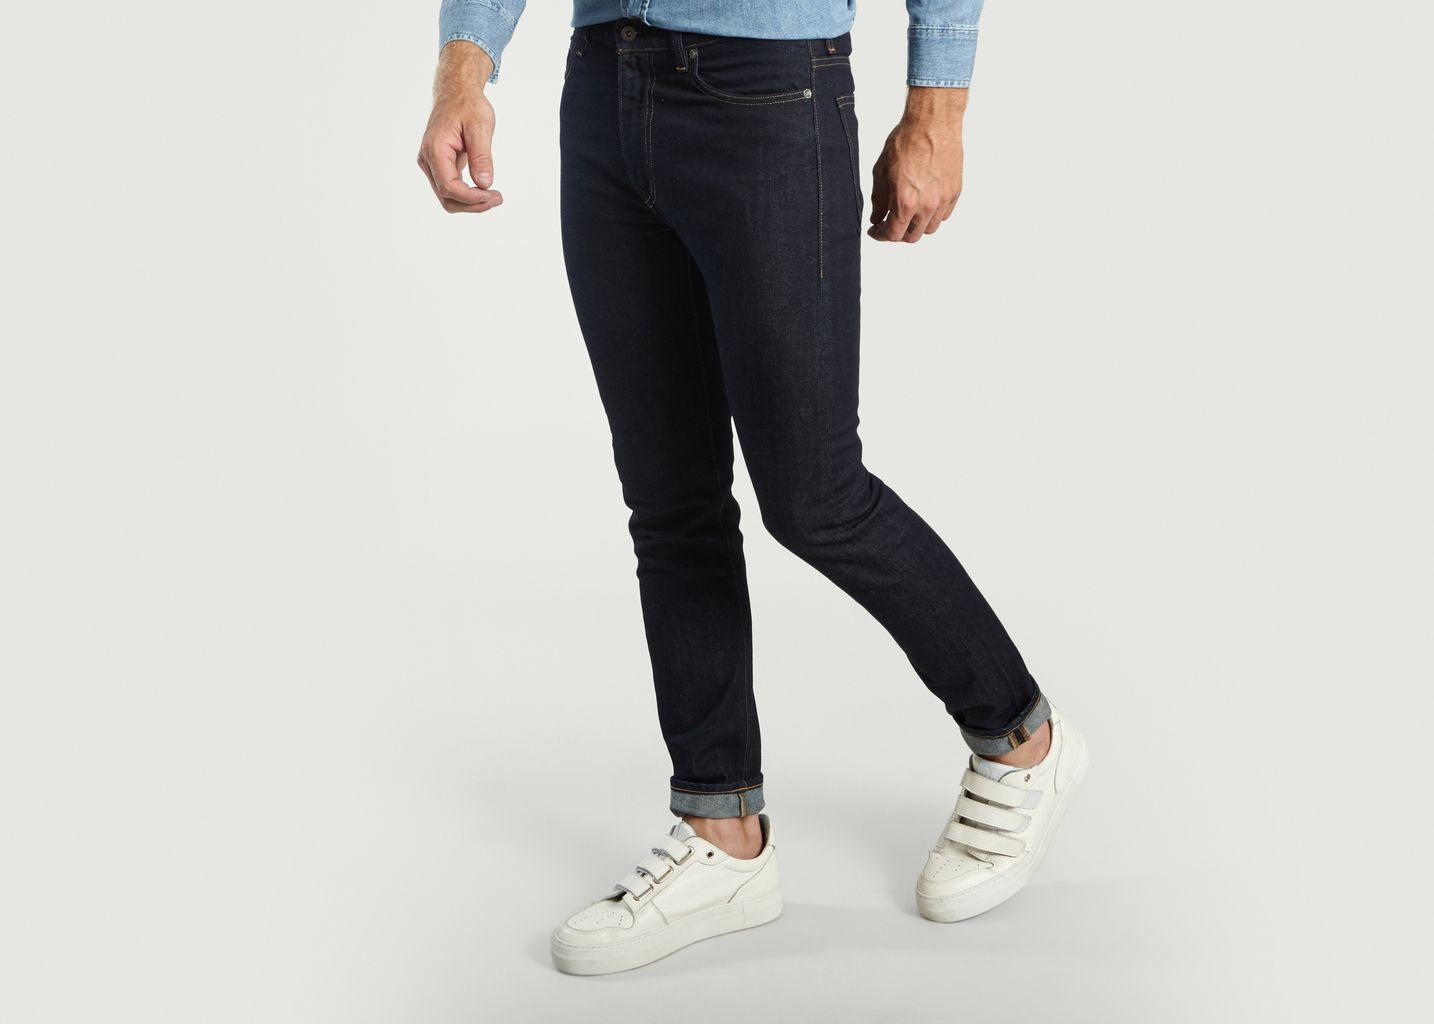 Jean Skinny 510 - Levi's Made and Crafted